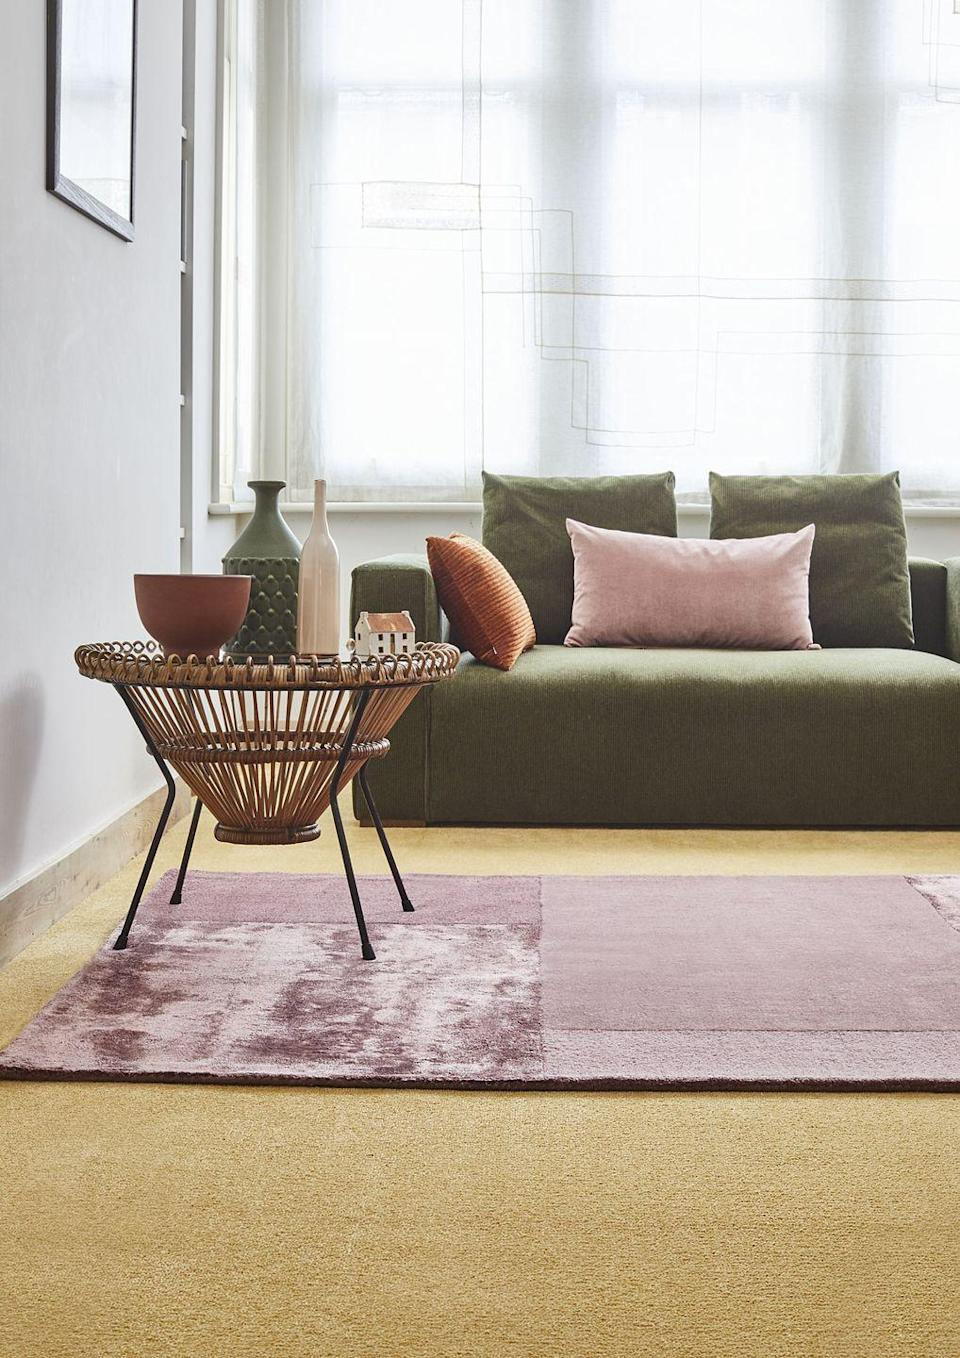 """<p>Pink and yellow may only sound appropriate for a child's bedroom or nursery, but softer shades are key to making it feel a bit more grown up. A mustard yellow mixed with a dusky pink in tactile fabrics such as wool or velvet, here matched with a lush forest green, creates a sophisticated colour scheme. </p><p>Pictured: <a href=""""https://www.carpetright.co.uk/carpets/shoreditch/"""" rel=""""nofollow noopener"""" target=""""_blank"""" data-ylk=""""slk:House Beautiful Shoreditch Carpet In Honey at Carpetright"""" class=""""link rapid-noclick-resp"""">House Beautiful Shoreditch Carpet In Honey at Carpetright</a></p>"""